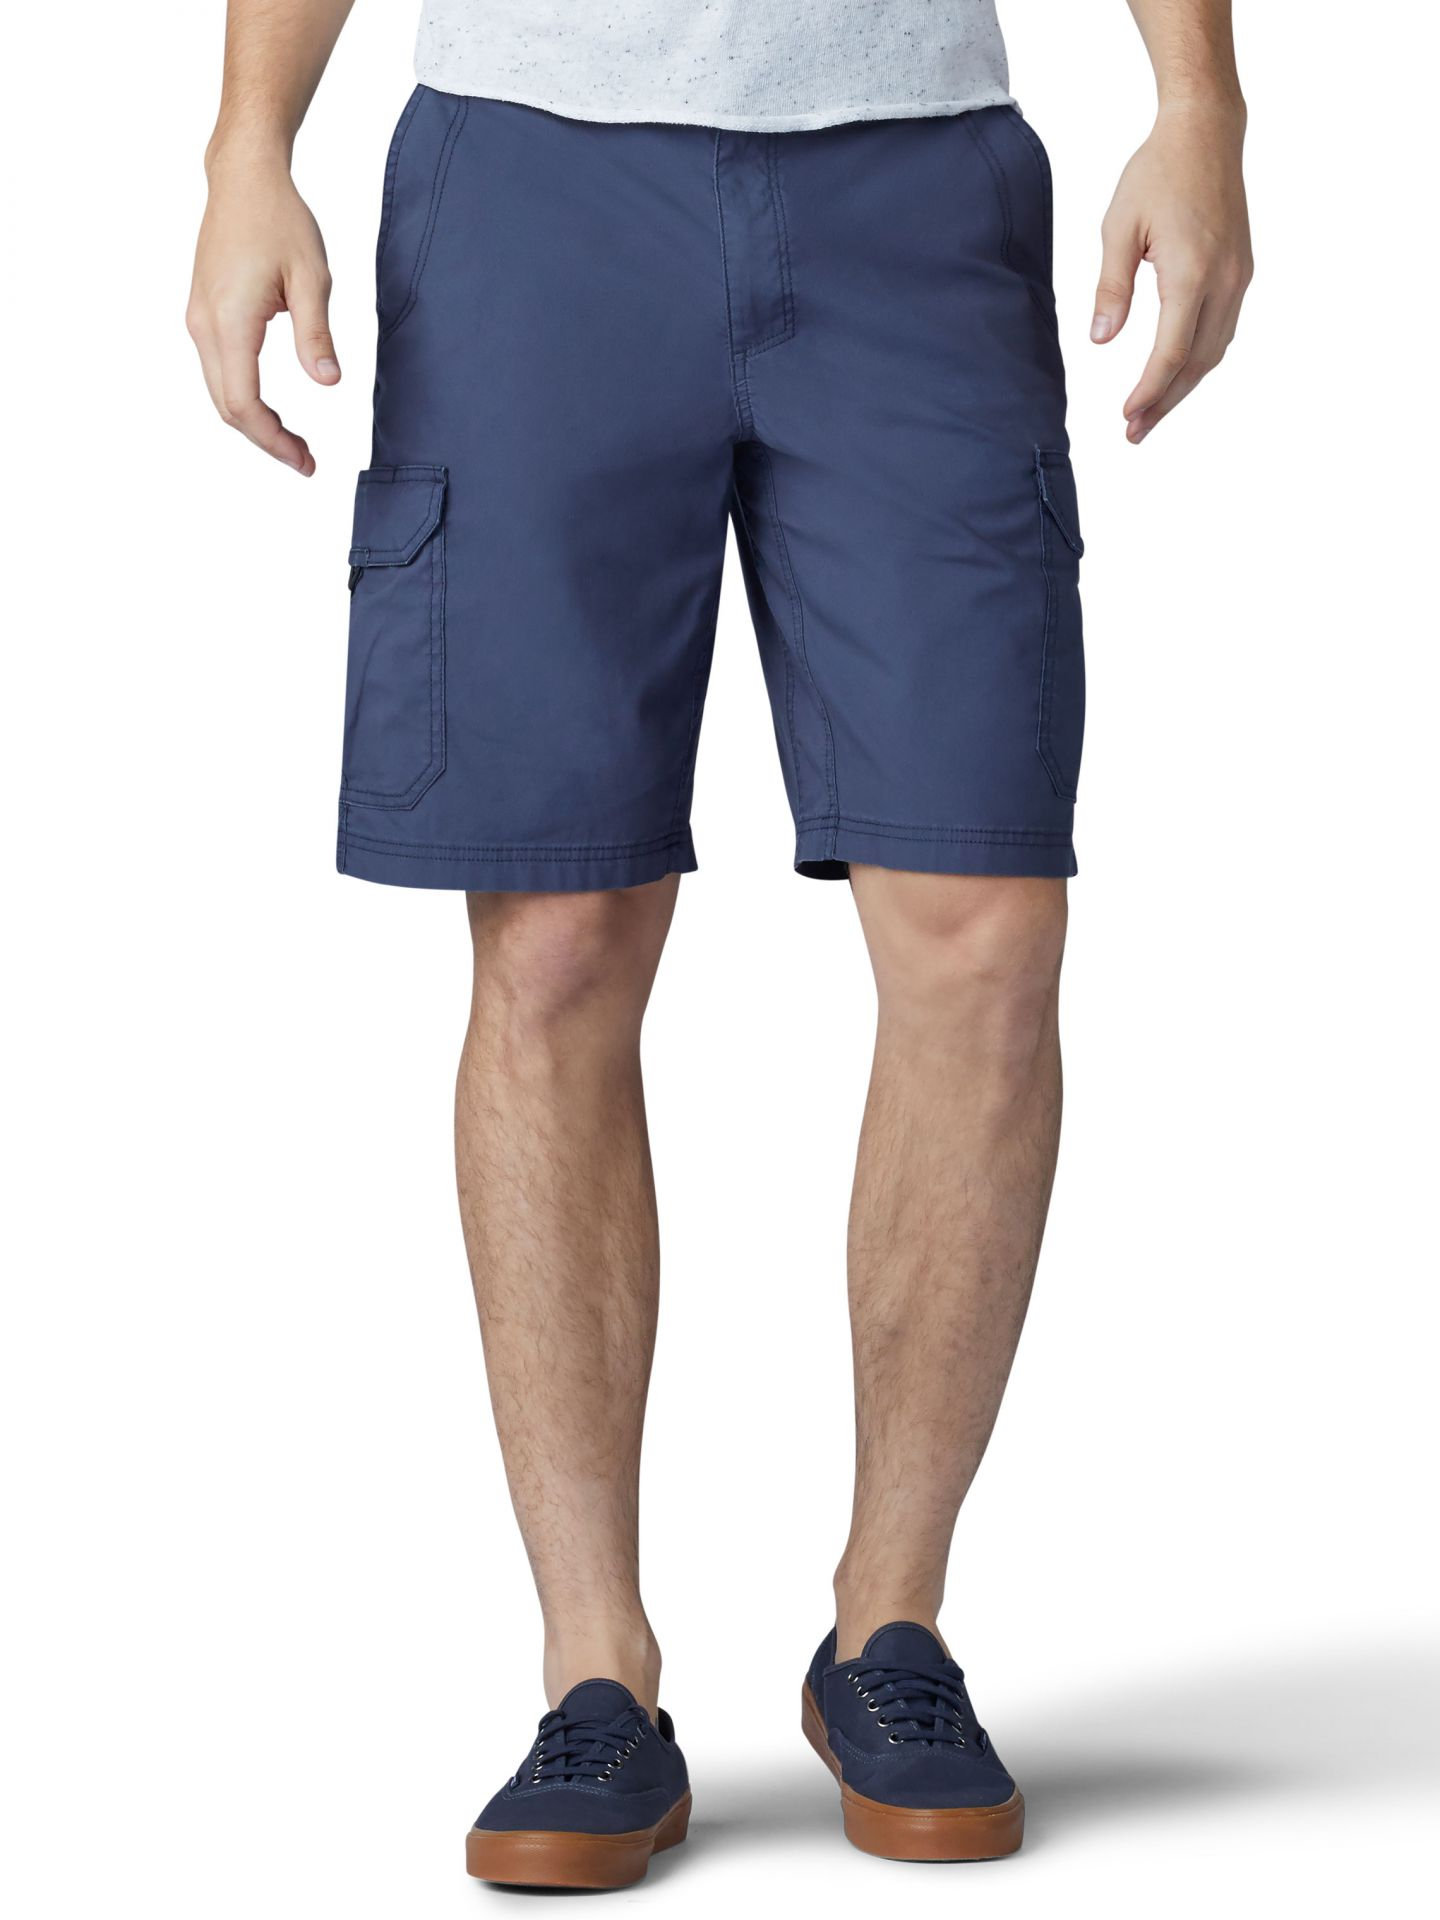 38 Silver Lee Mens Performance Cargo Short